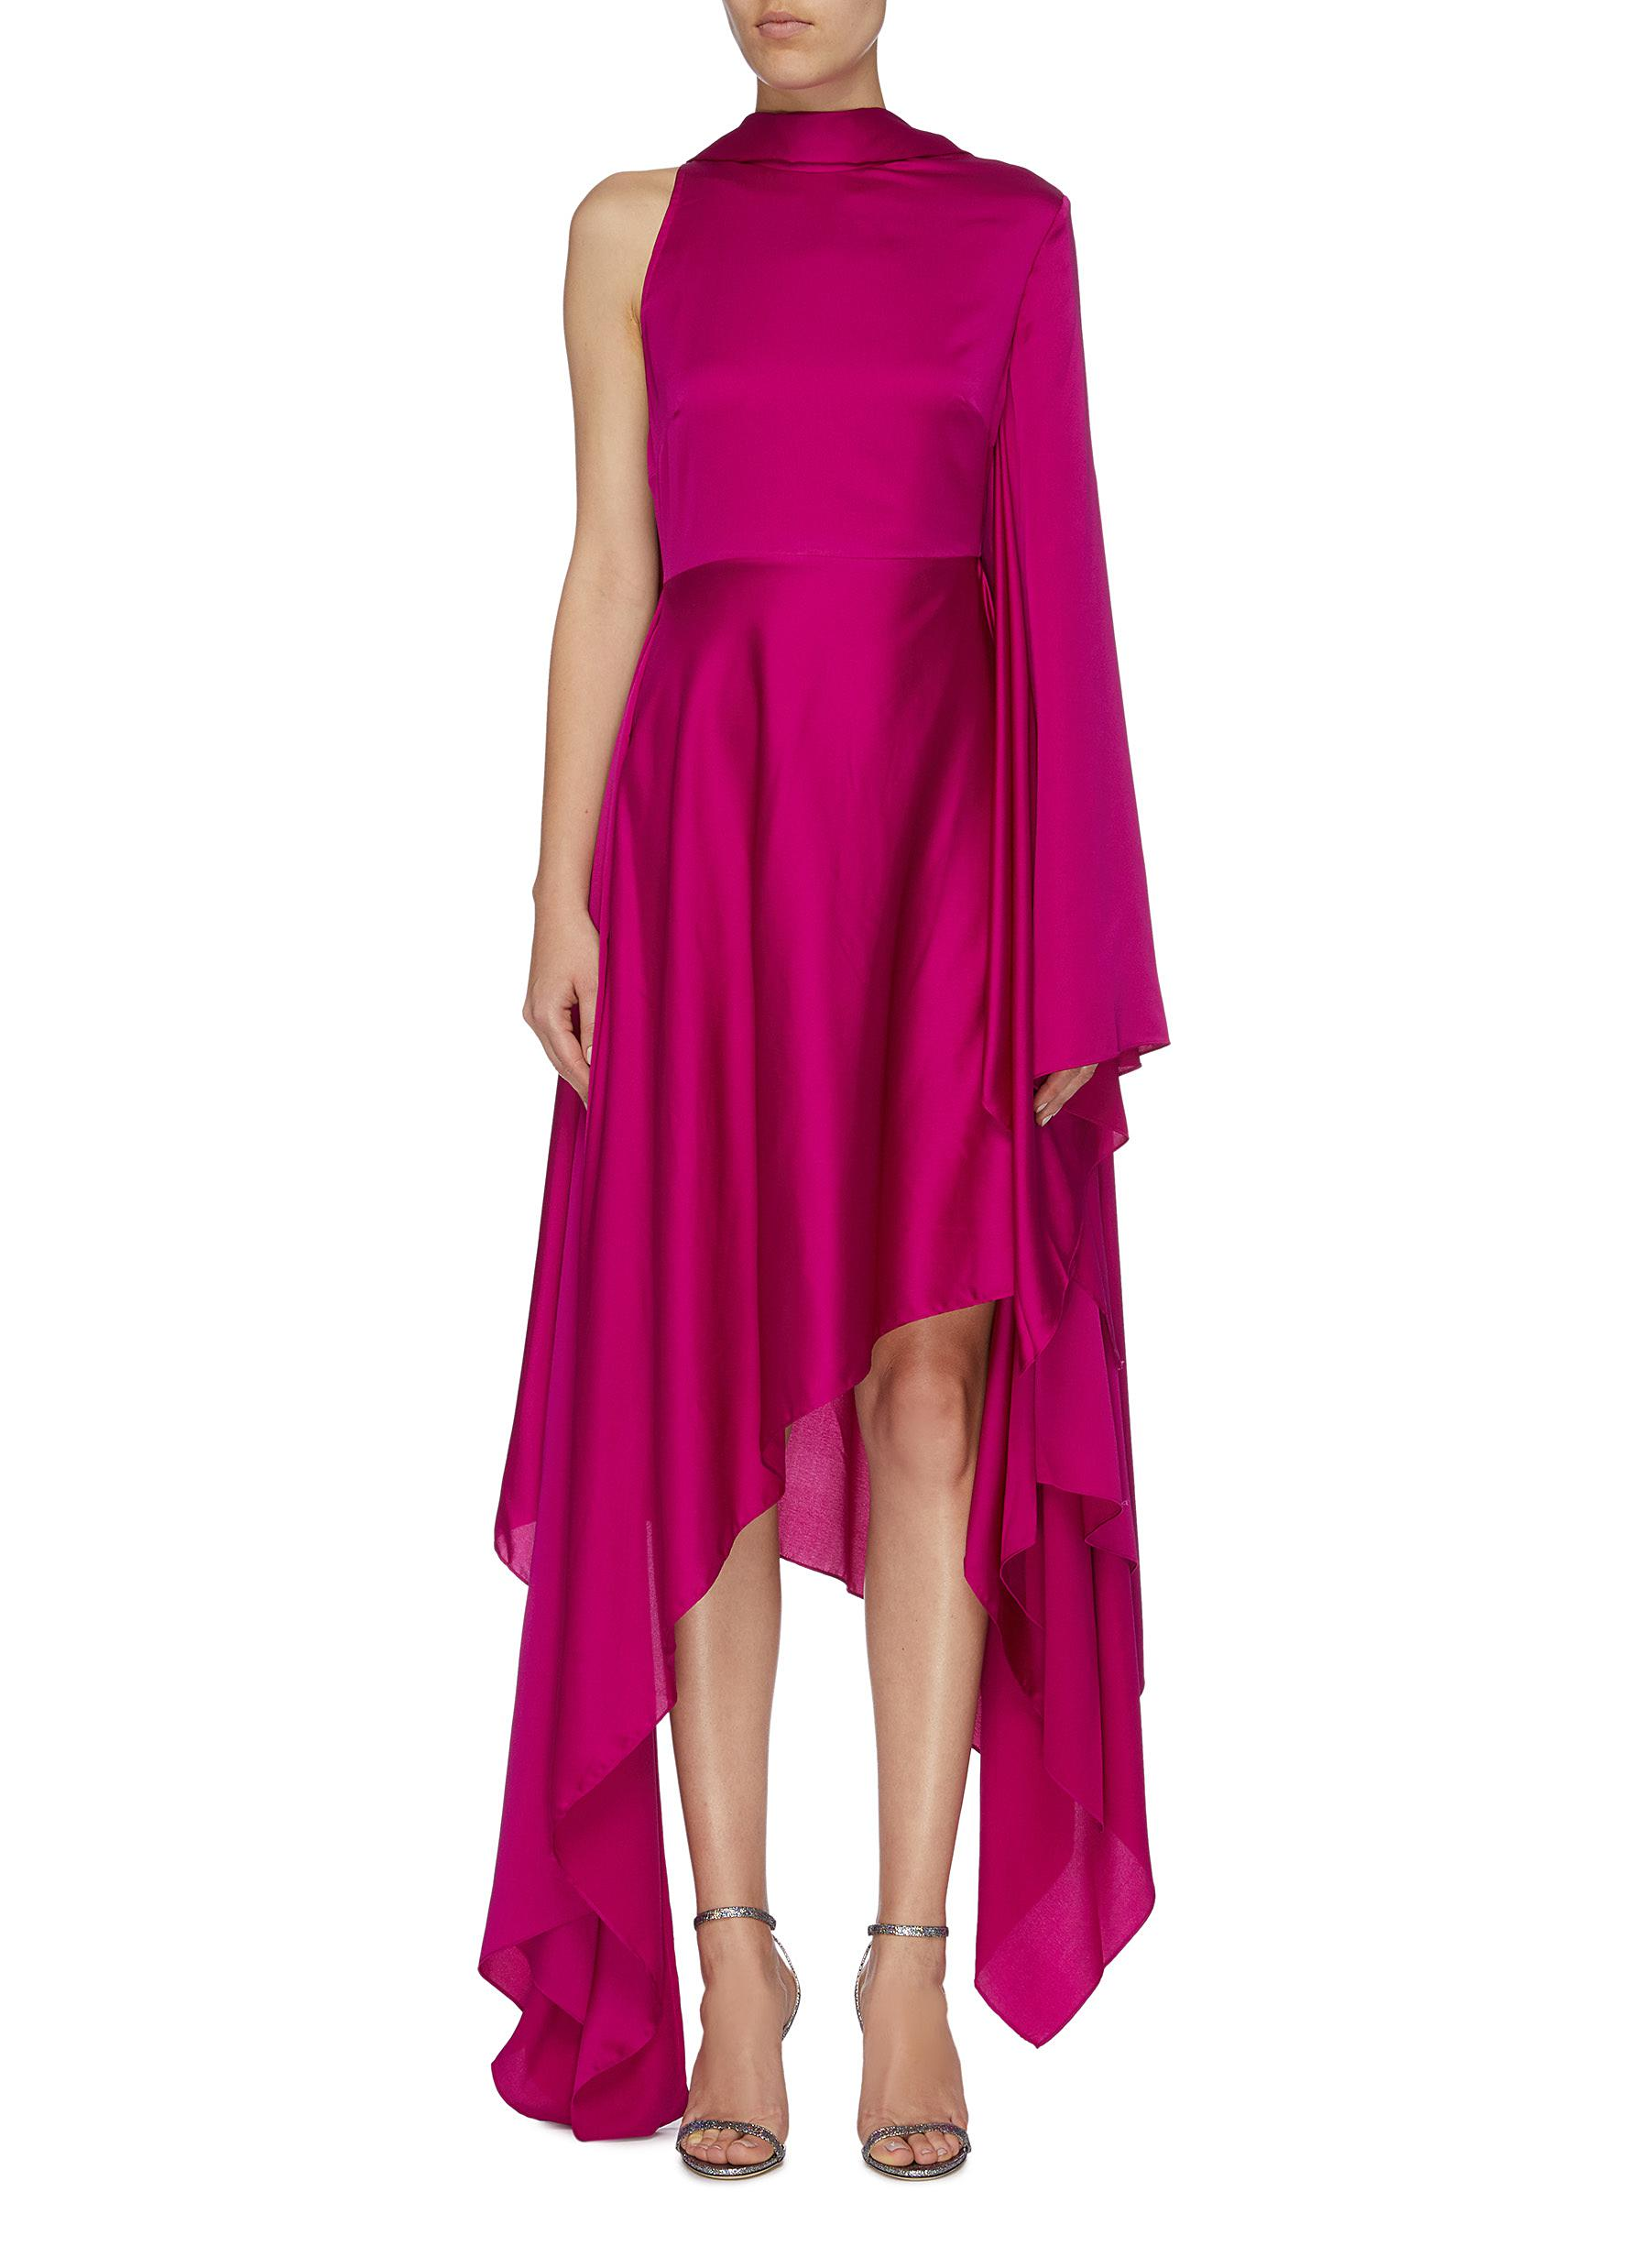 Naida waterfall drape one-shoulder satin dress by Solace London